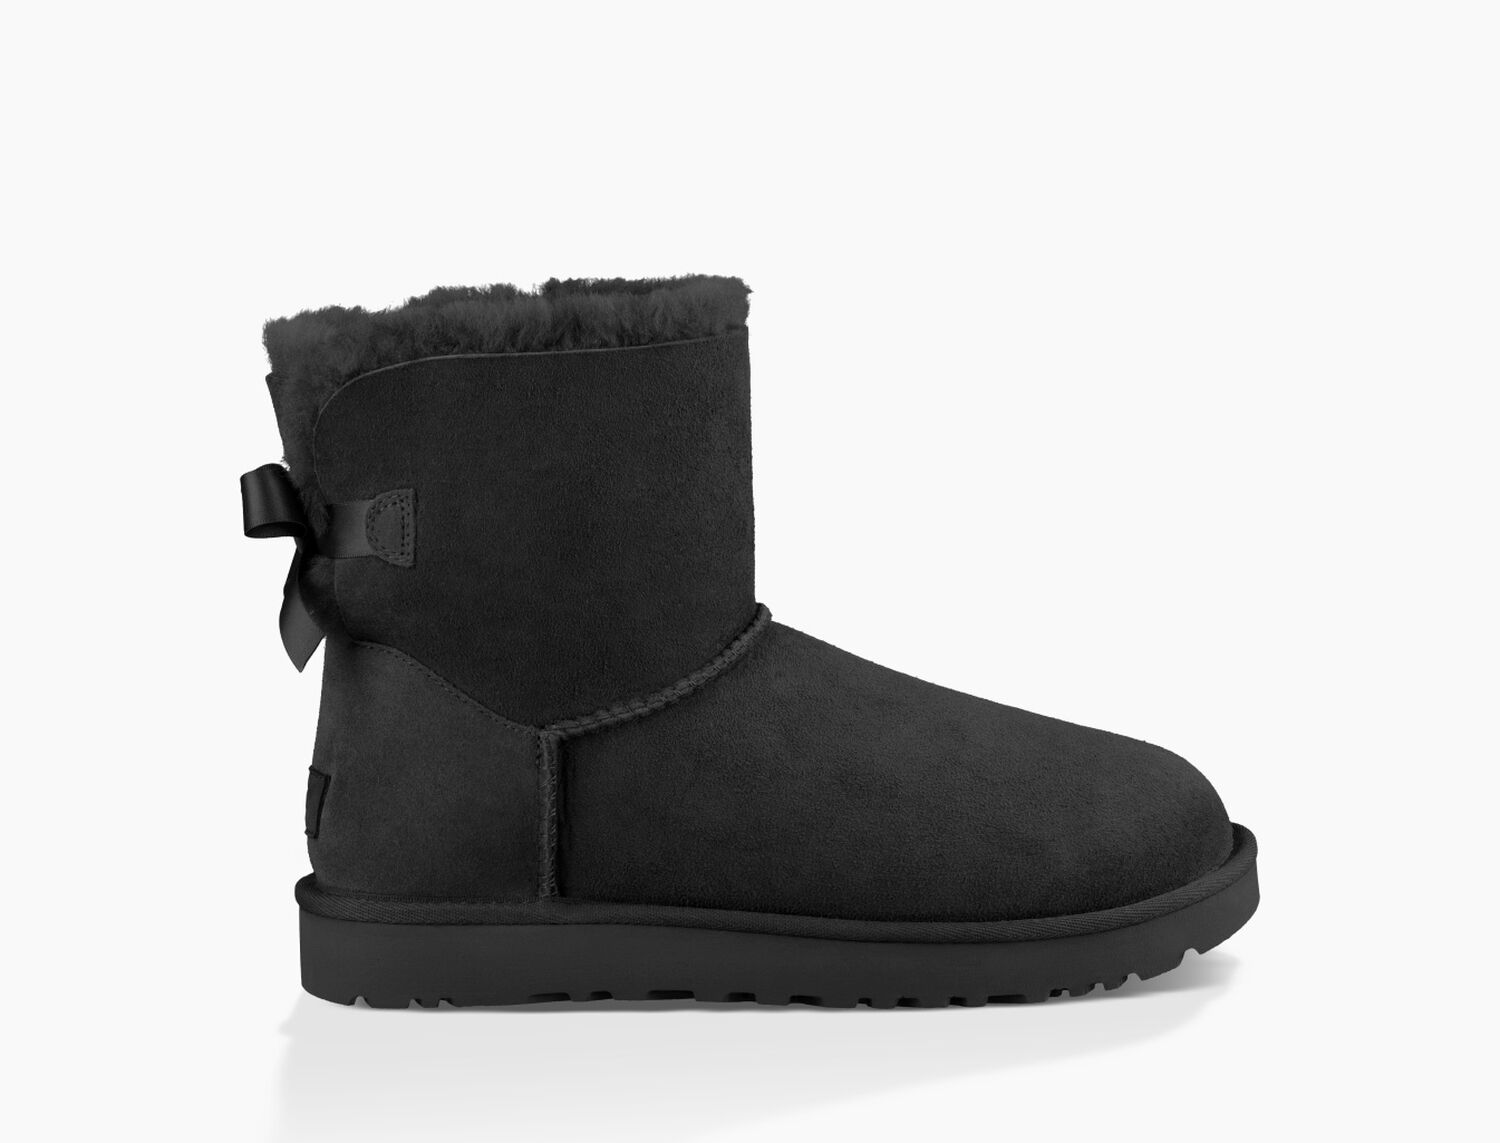 Genuine Australian Sheepskin UGG Boots UGG Express provides a range of stylish, high quality ugg boots at affordable prices. Experience the Luxury of Australian Sheepskin, Perfect for the Whole Family!